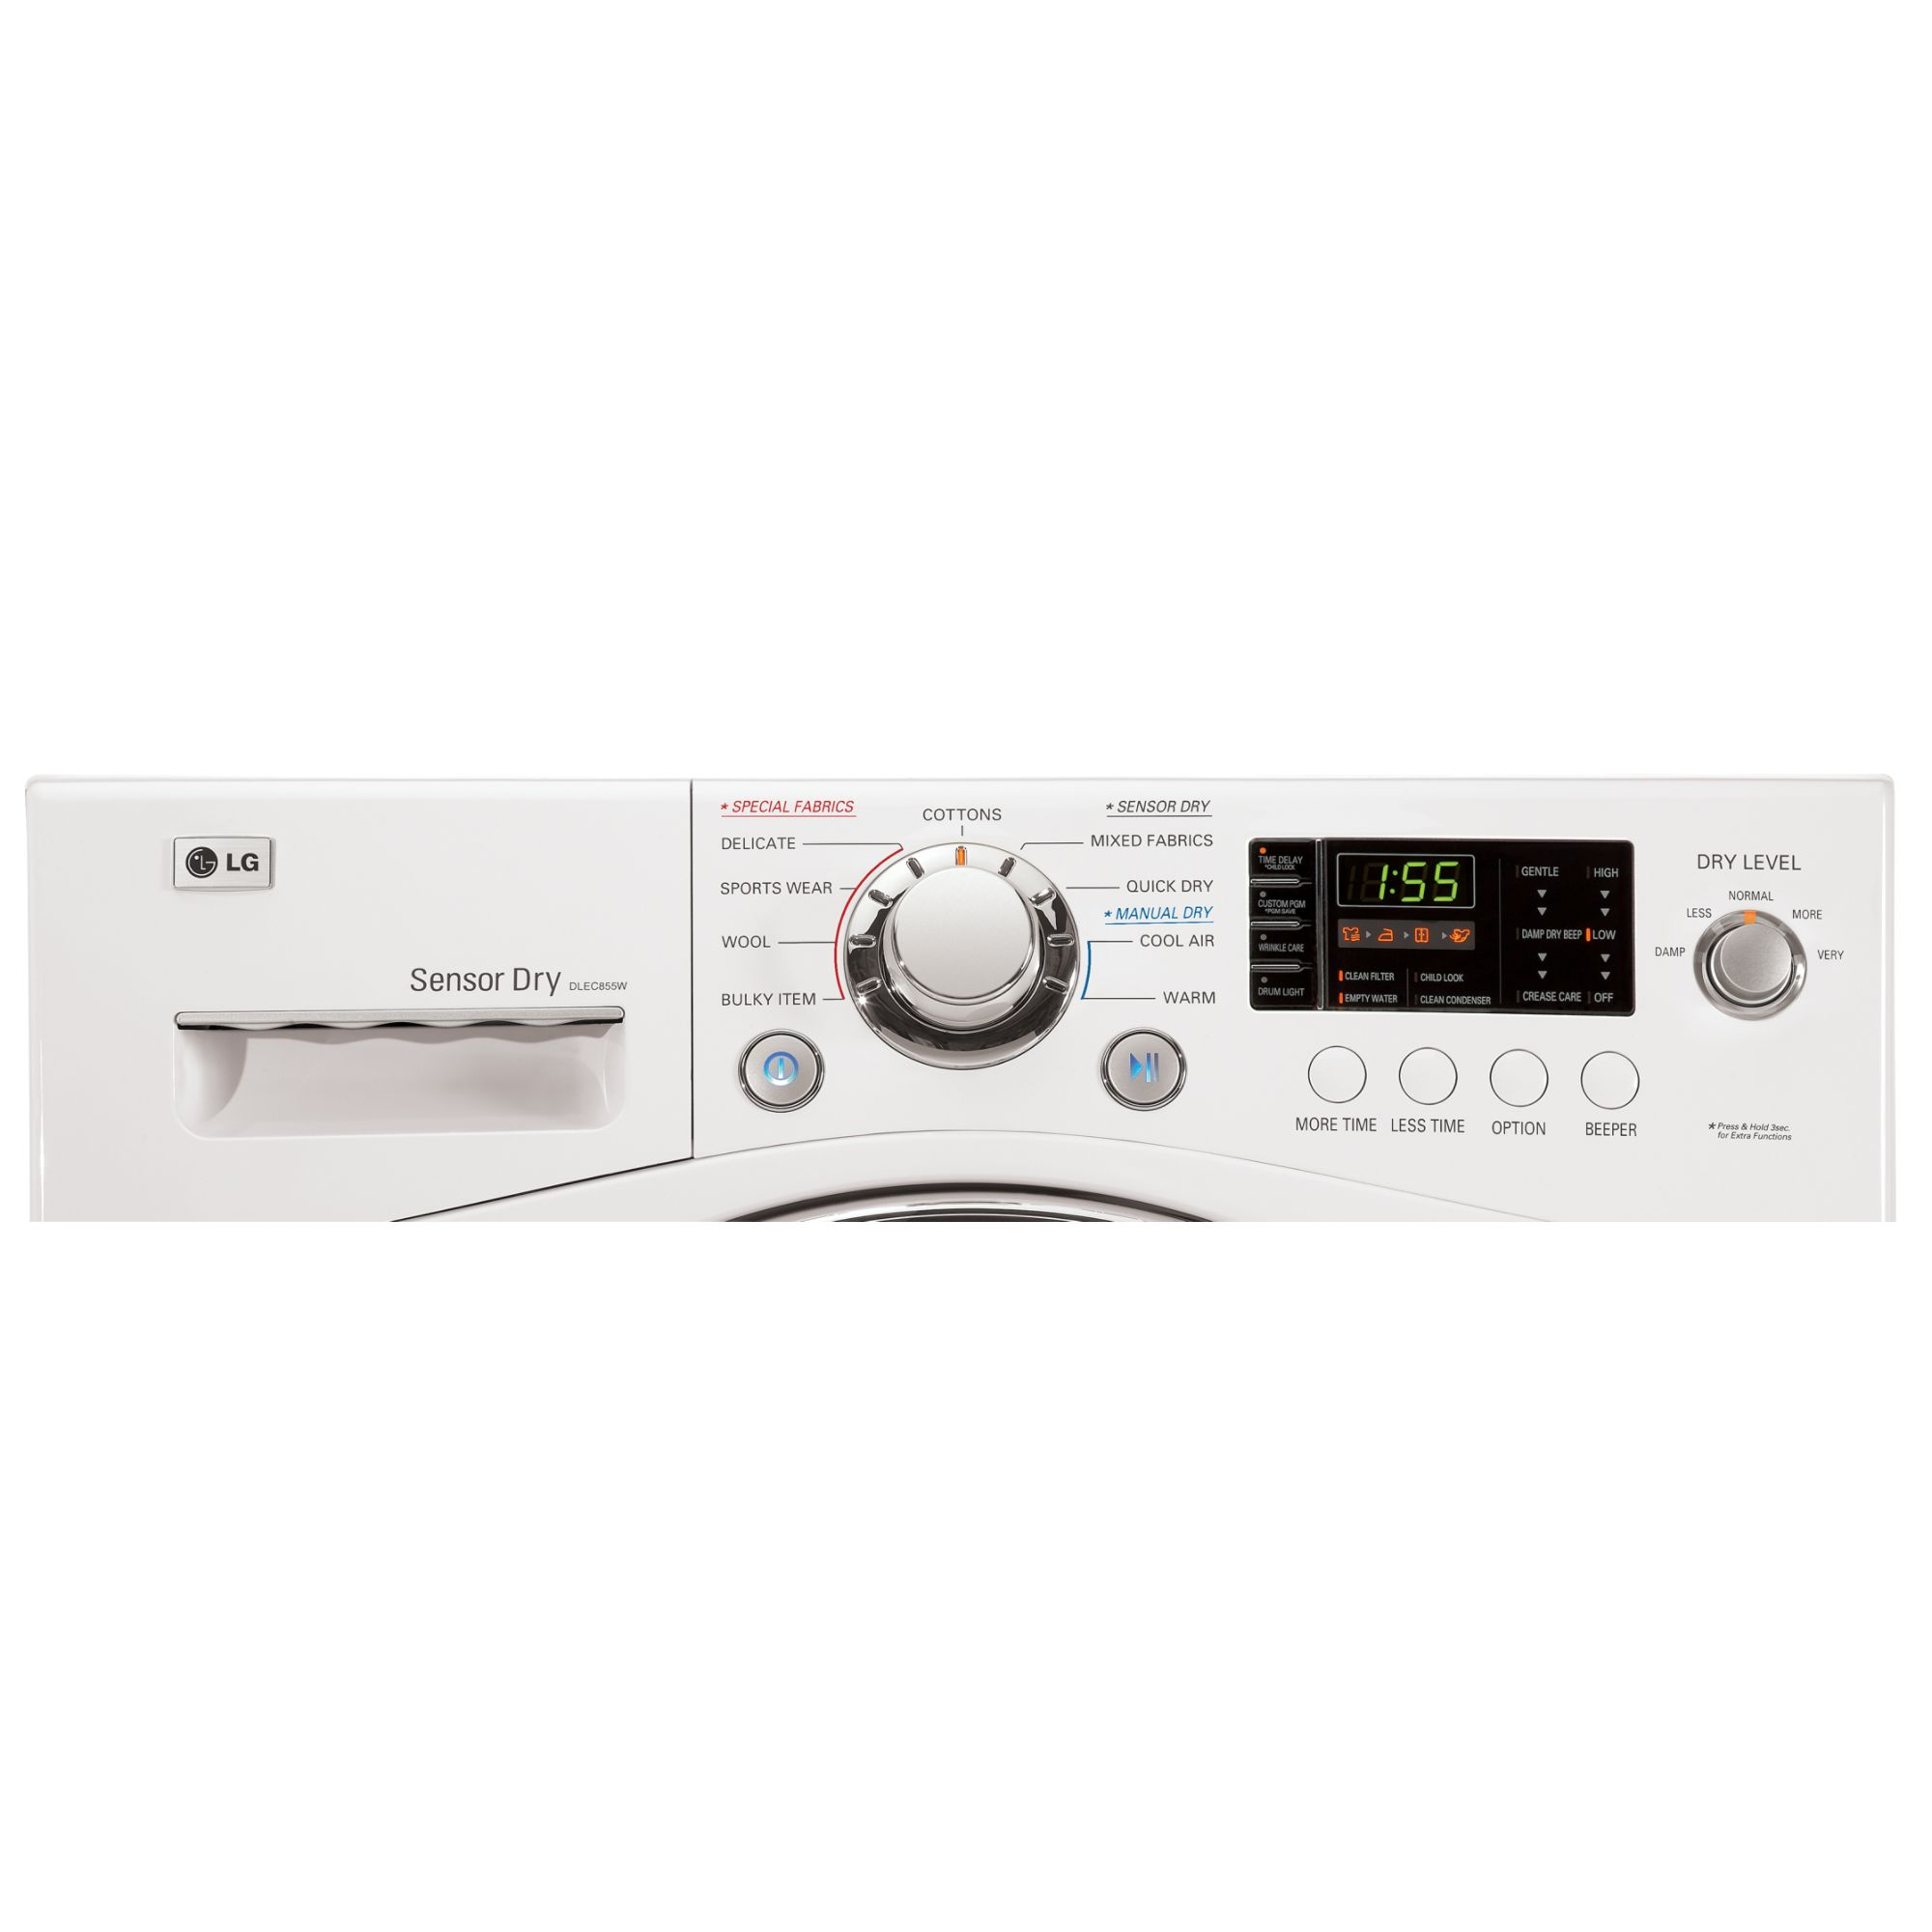 LG DLEC855W 4.2 cu. ft. Compact Electric Dryer